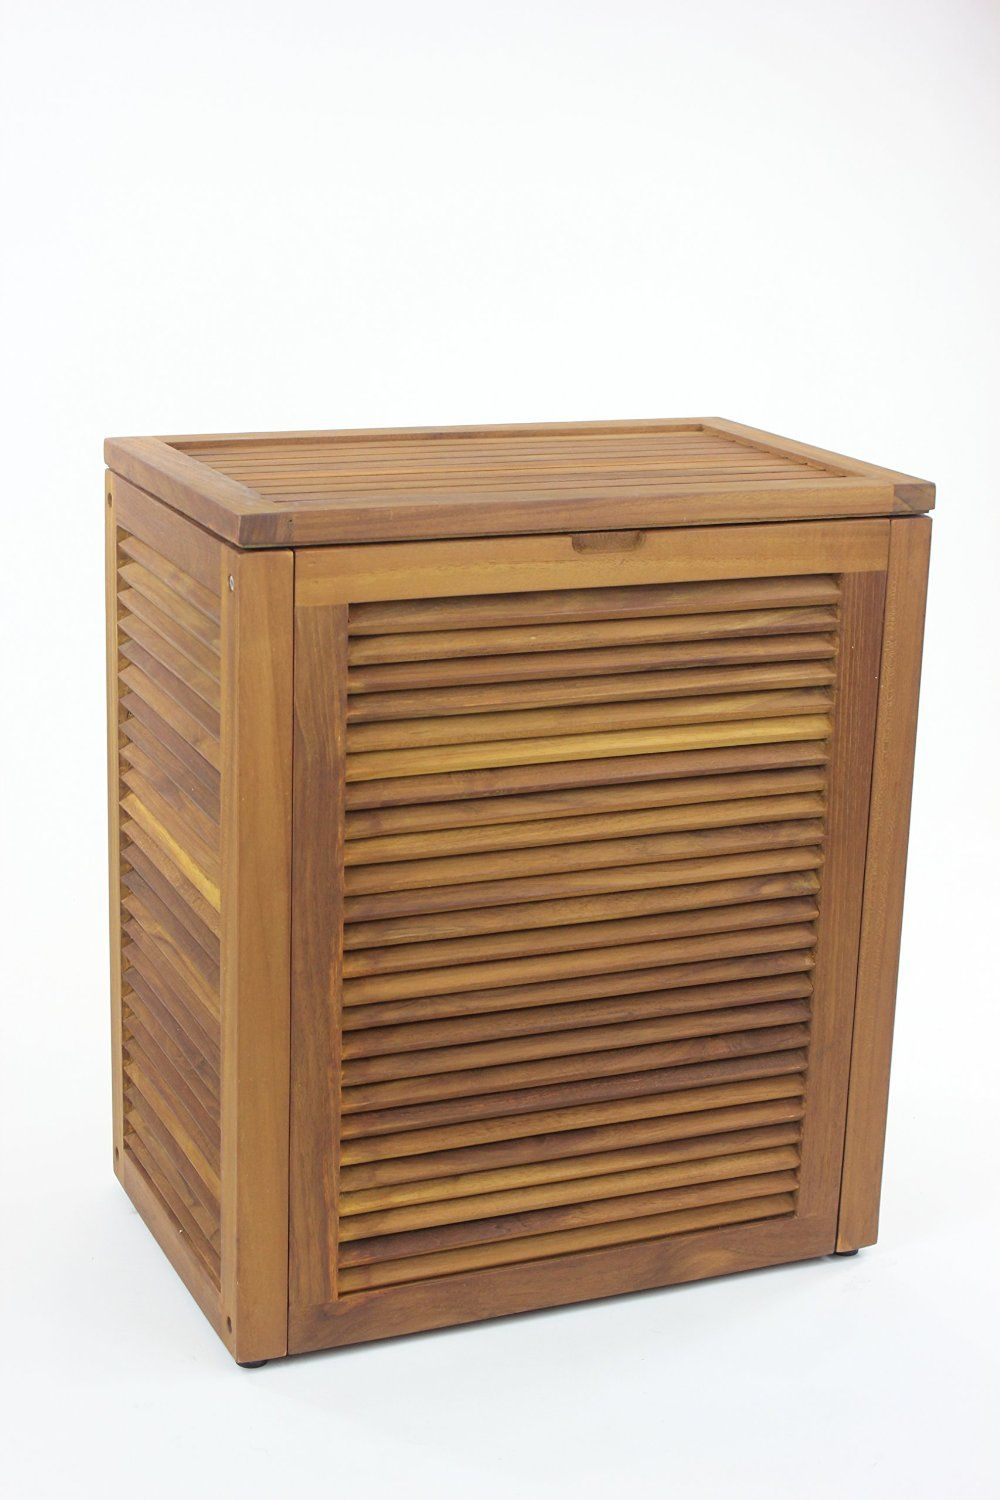 mat with design care a bench of image why shelf shower wood bathroom stool new accessory teak home great corner